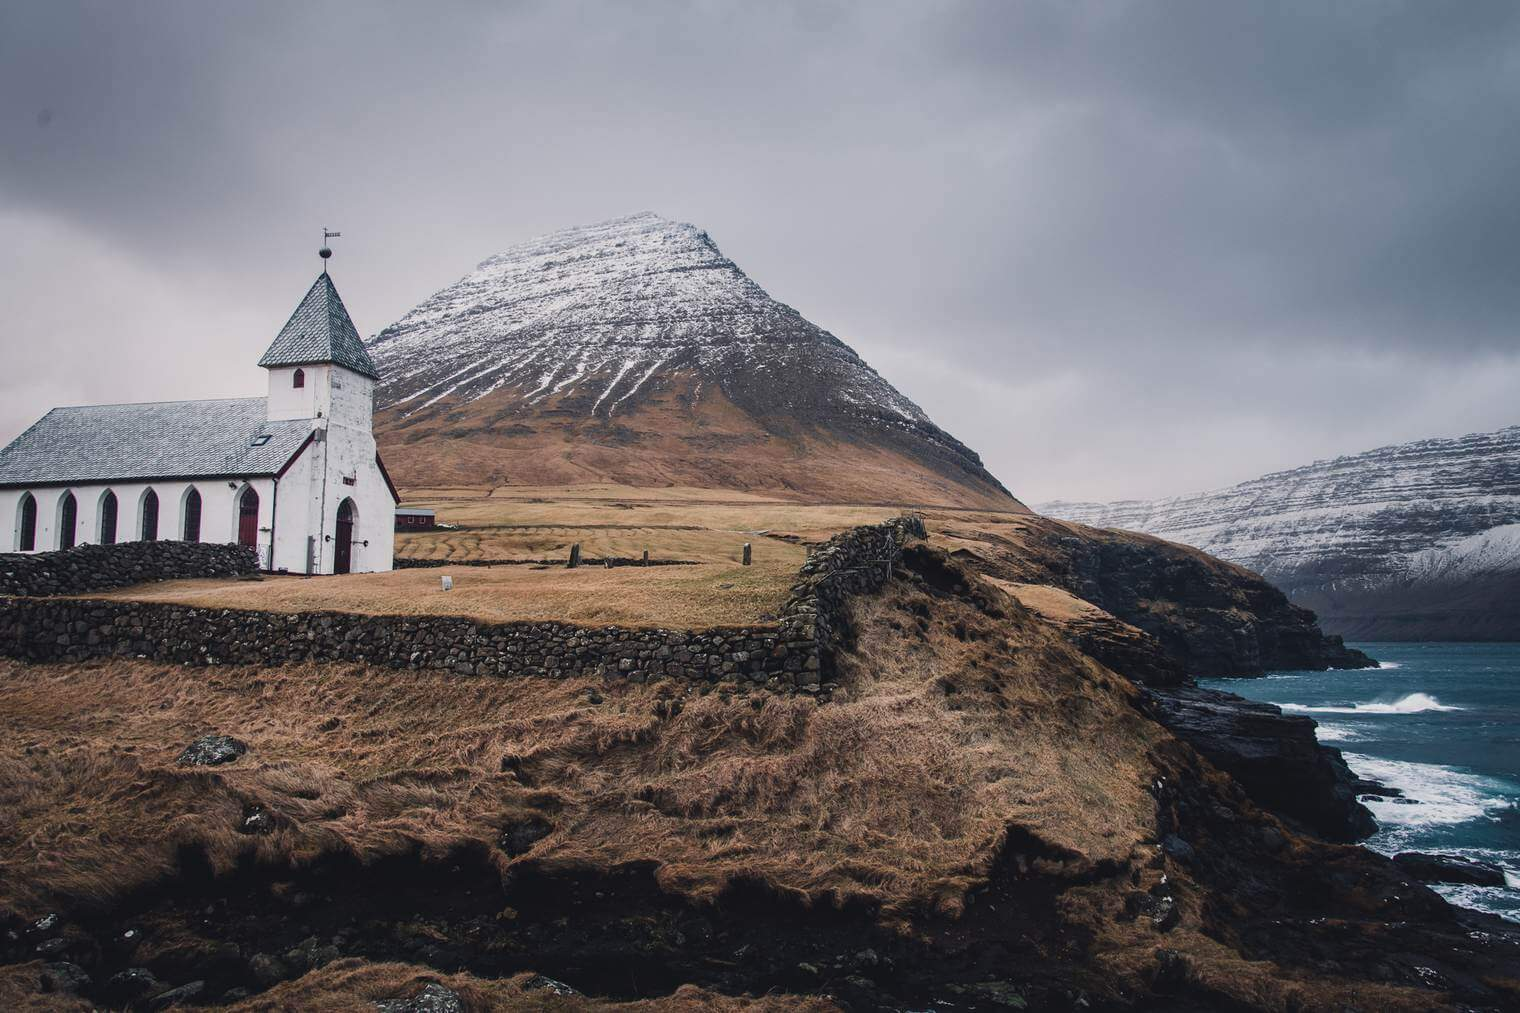 Dark and Moody Landscape of the Faroe Islands